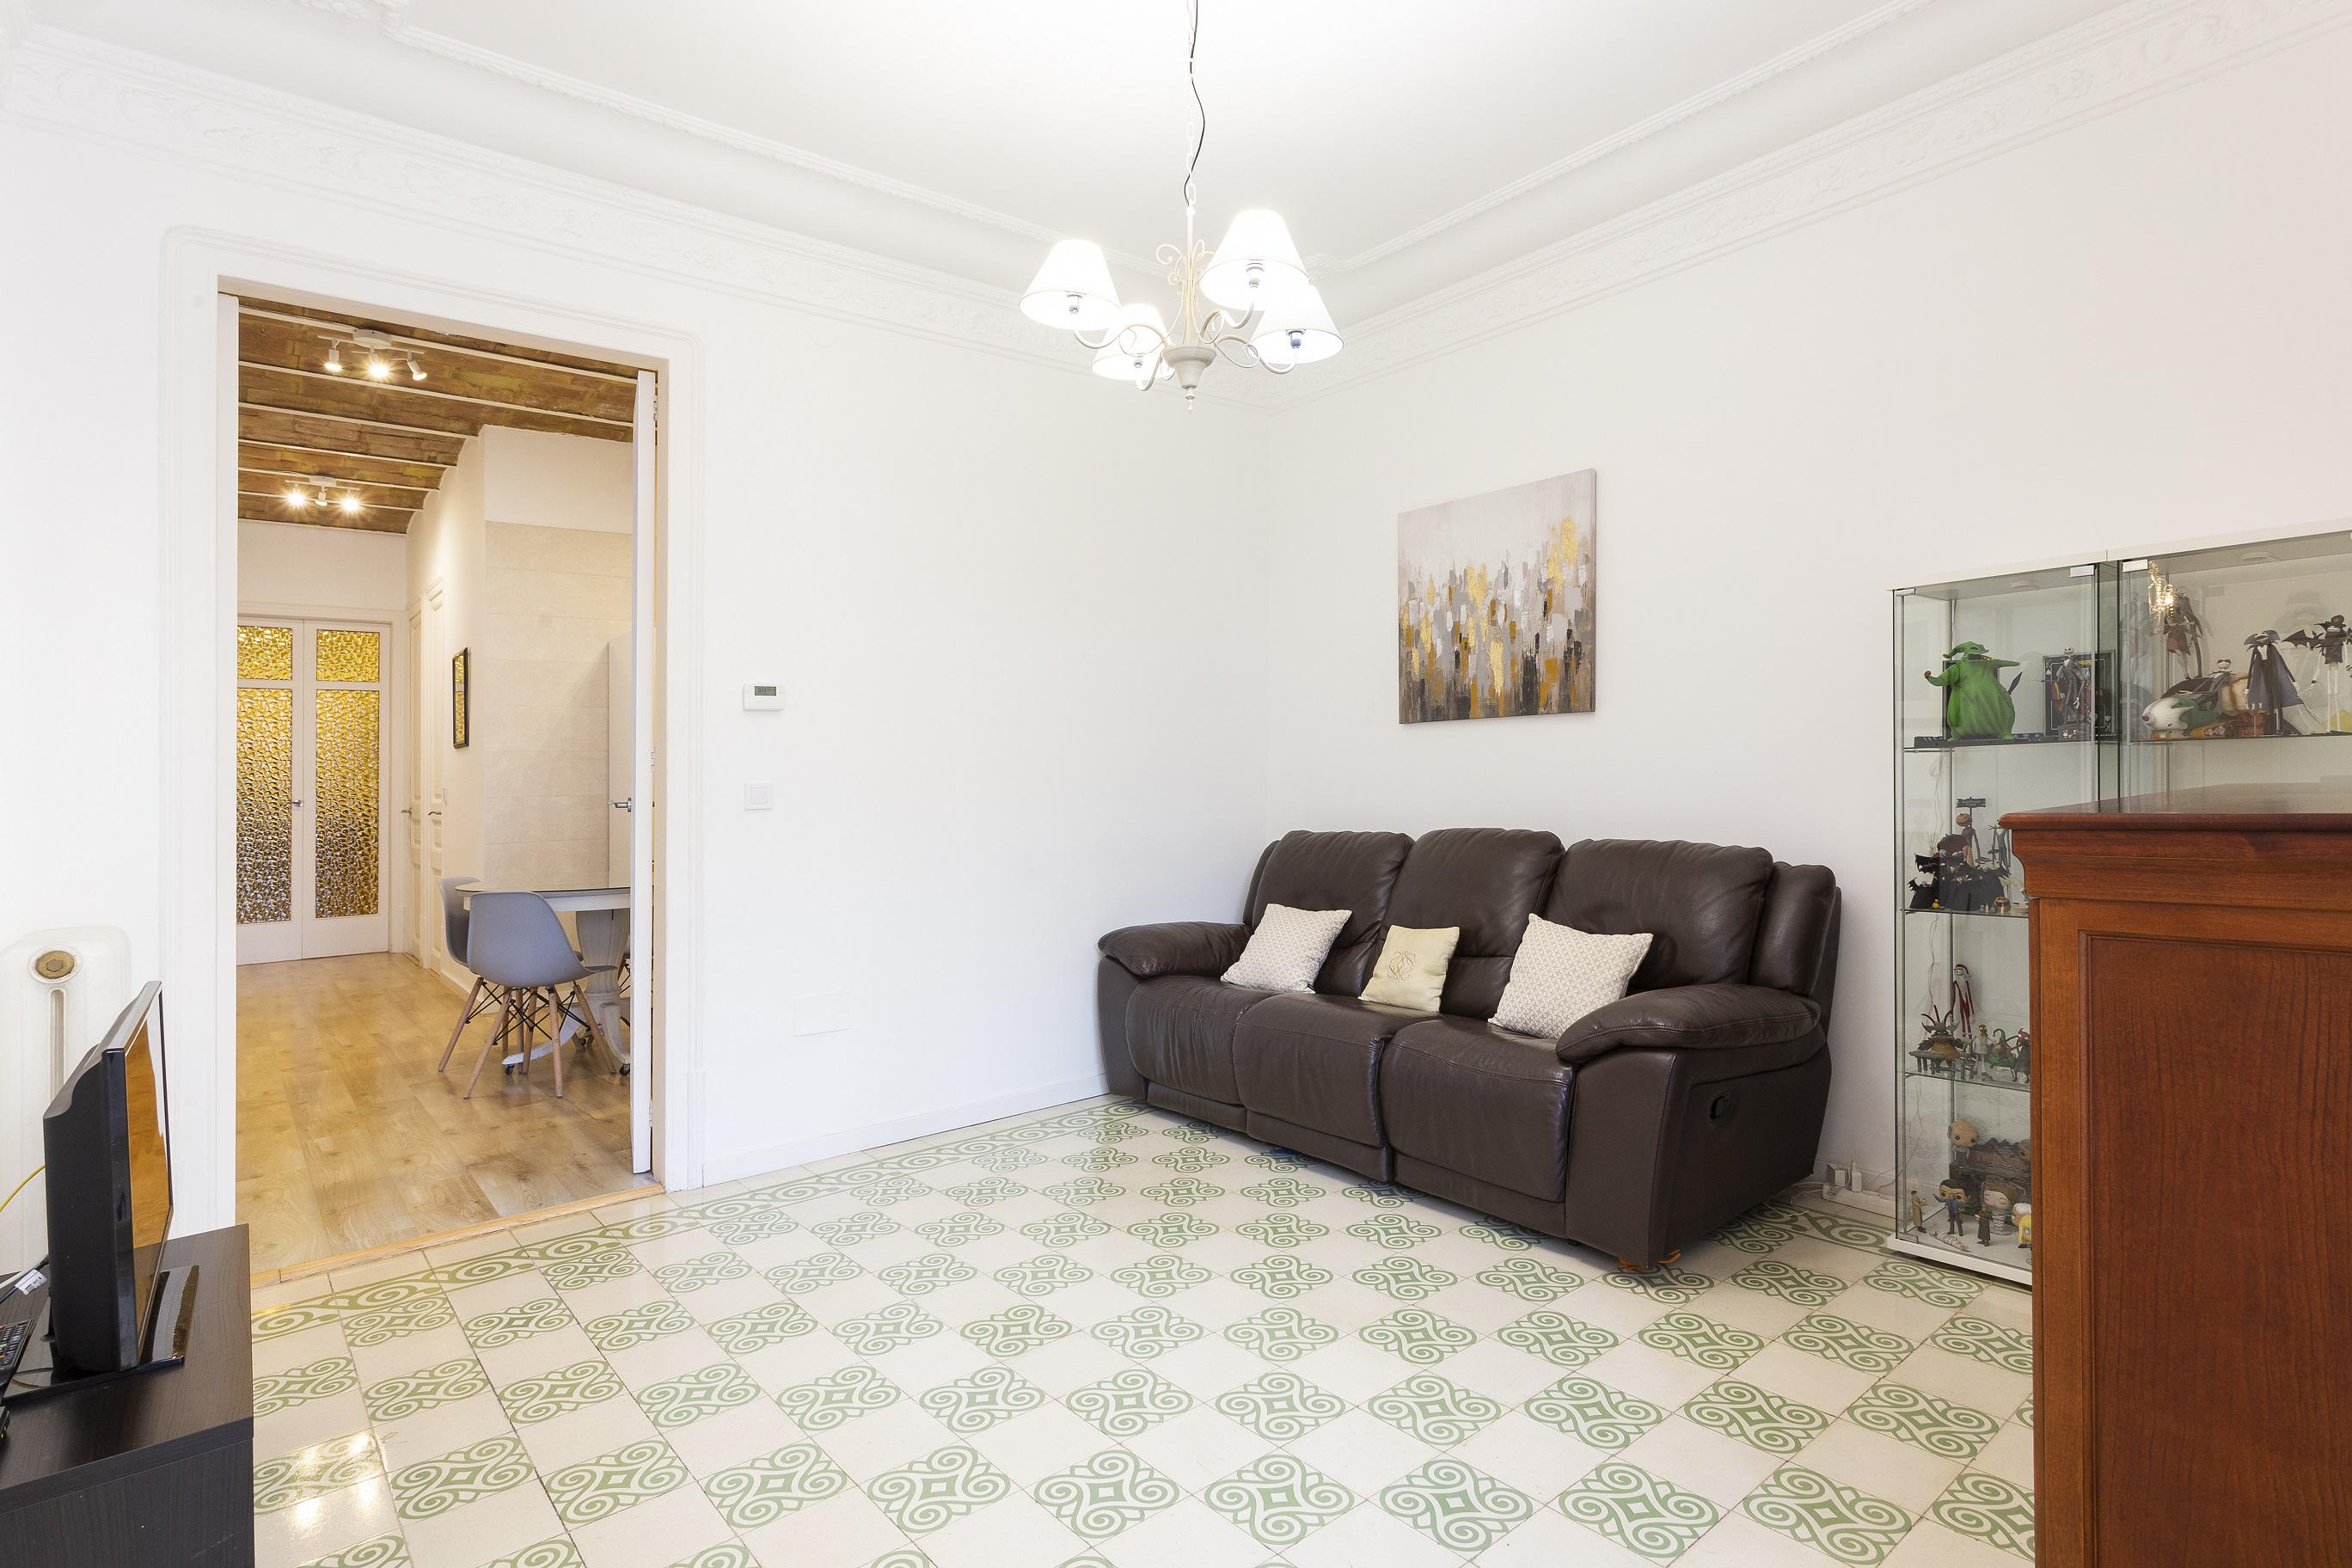 236190 Apartment for sale in Eixample, Old Left Eixample 1